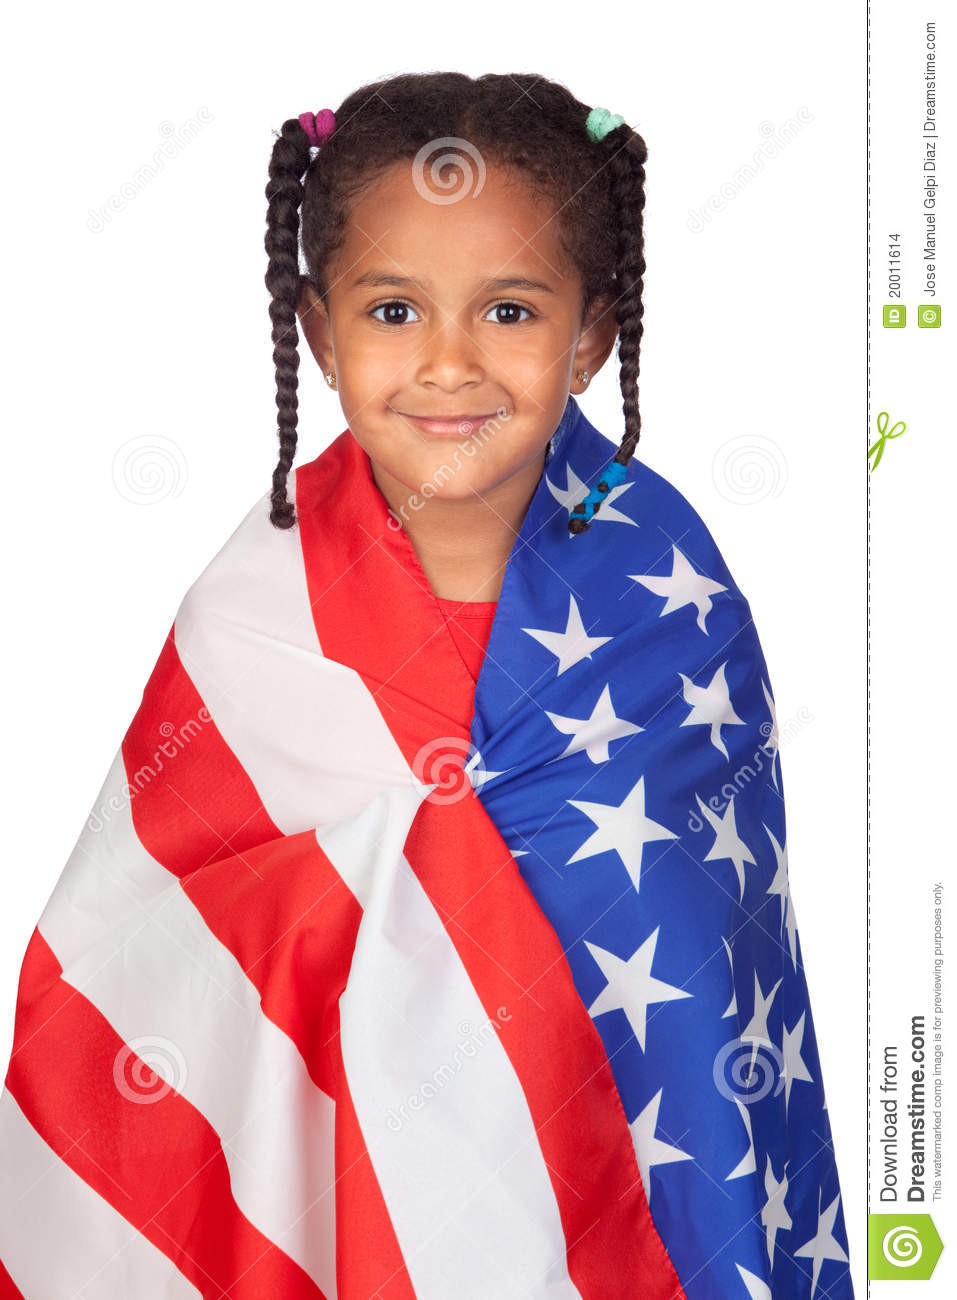 African little girl with a American flag